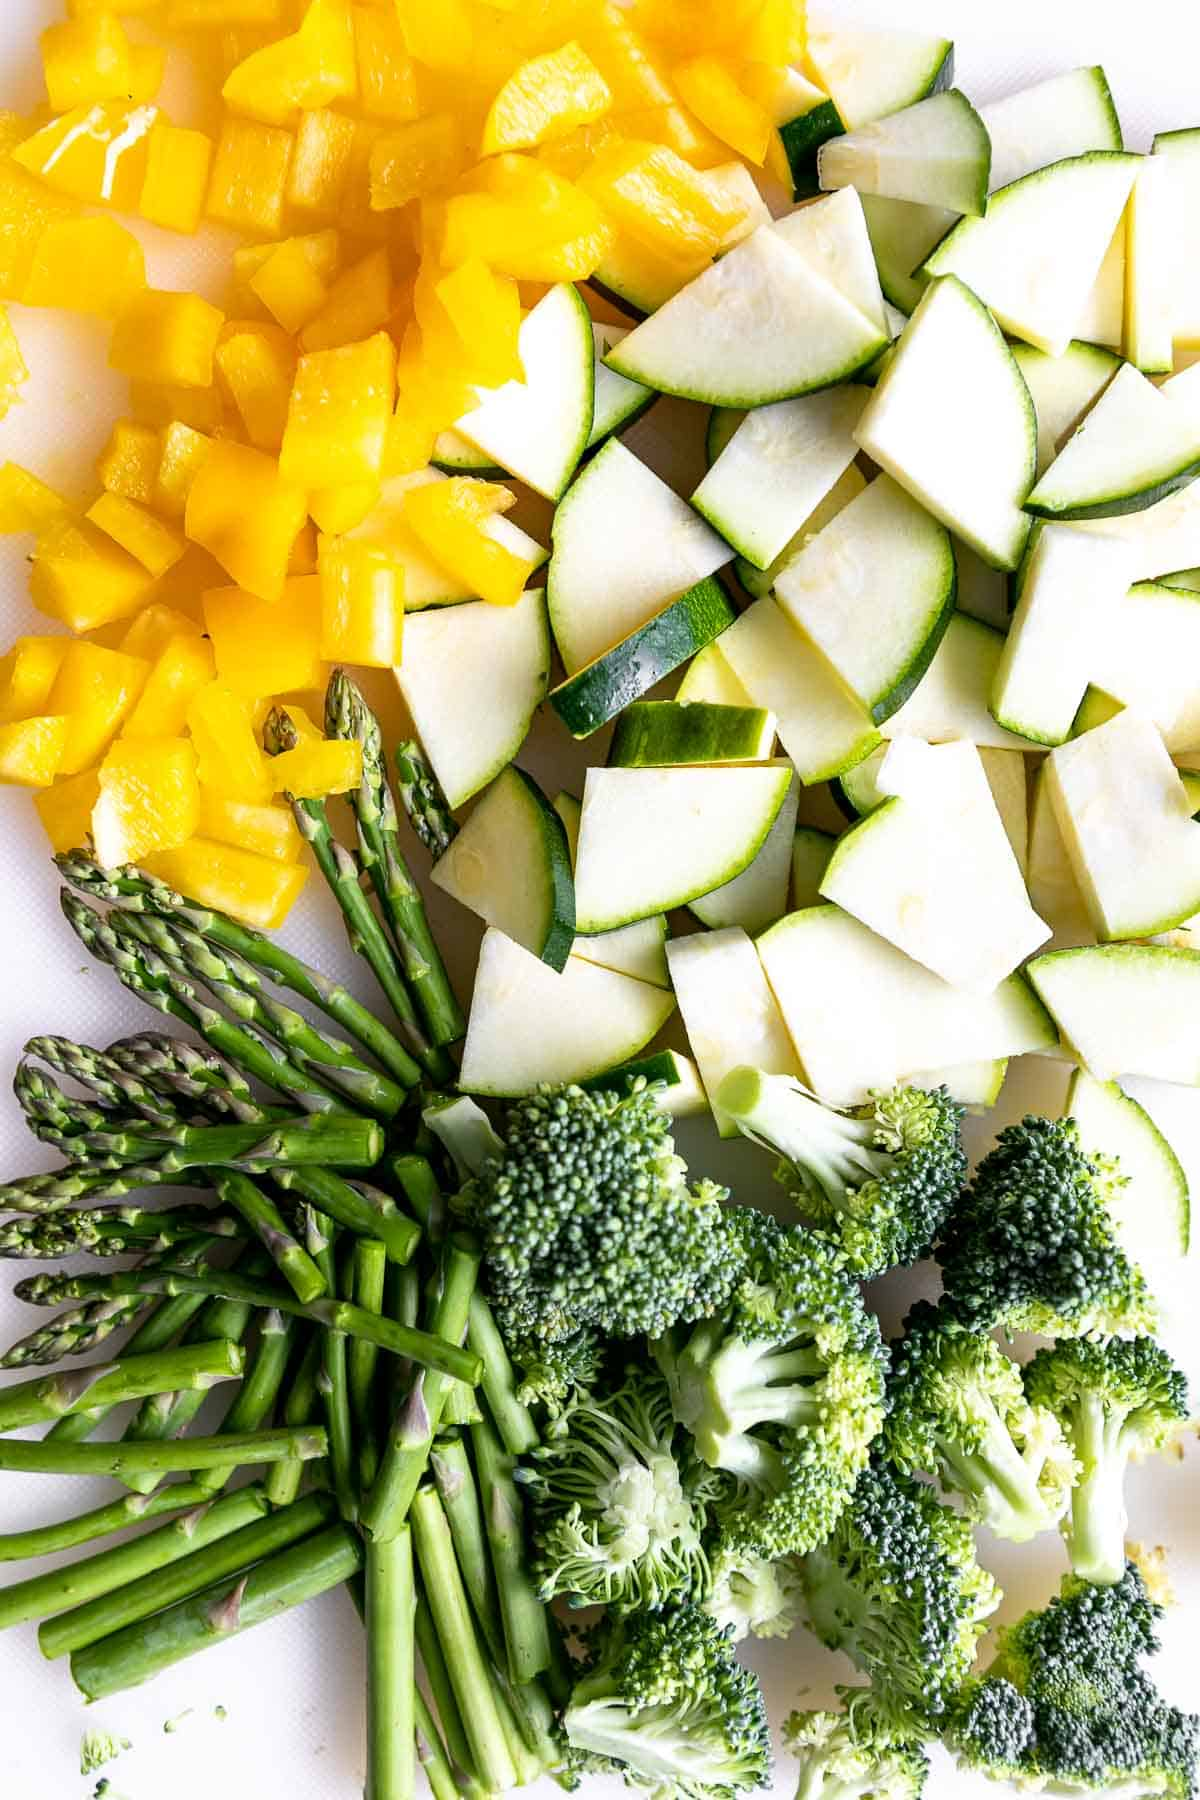 diced vegetables on a white cutting board